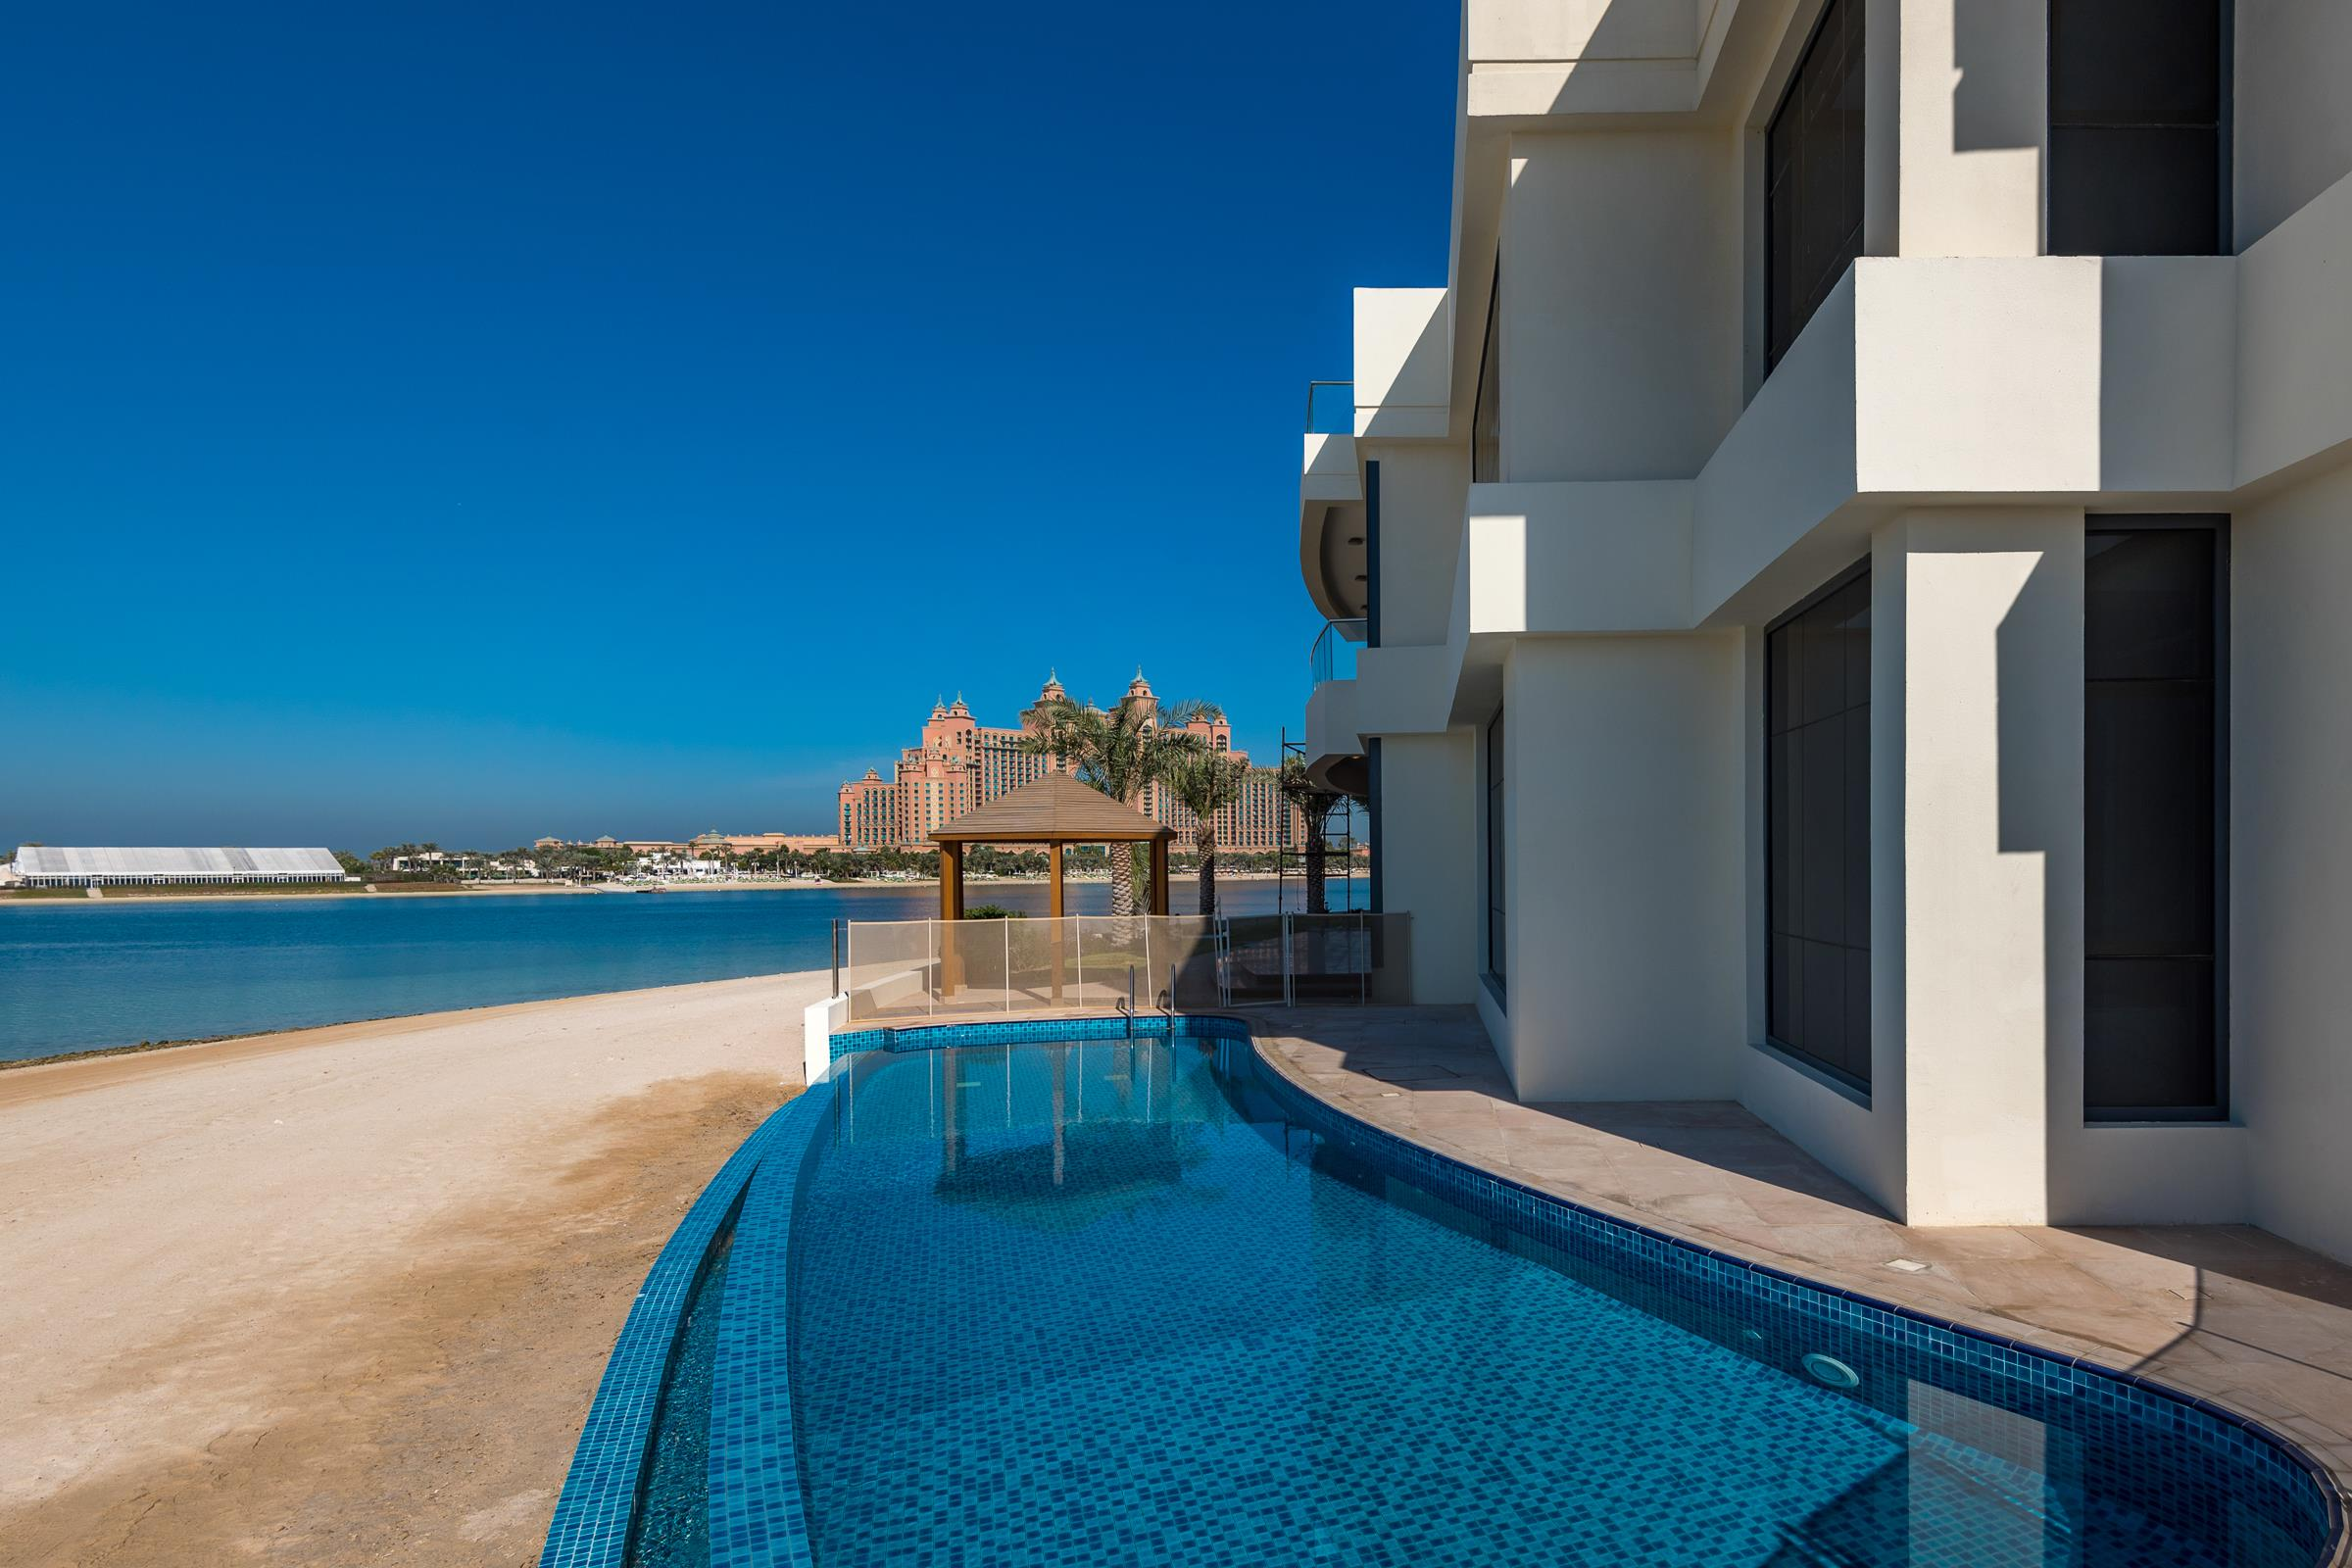 Rare Opportunity to Own a Full Tip of 5 villas